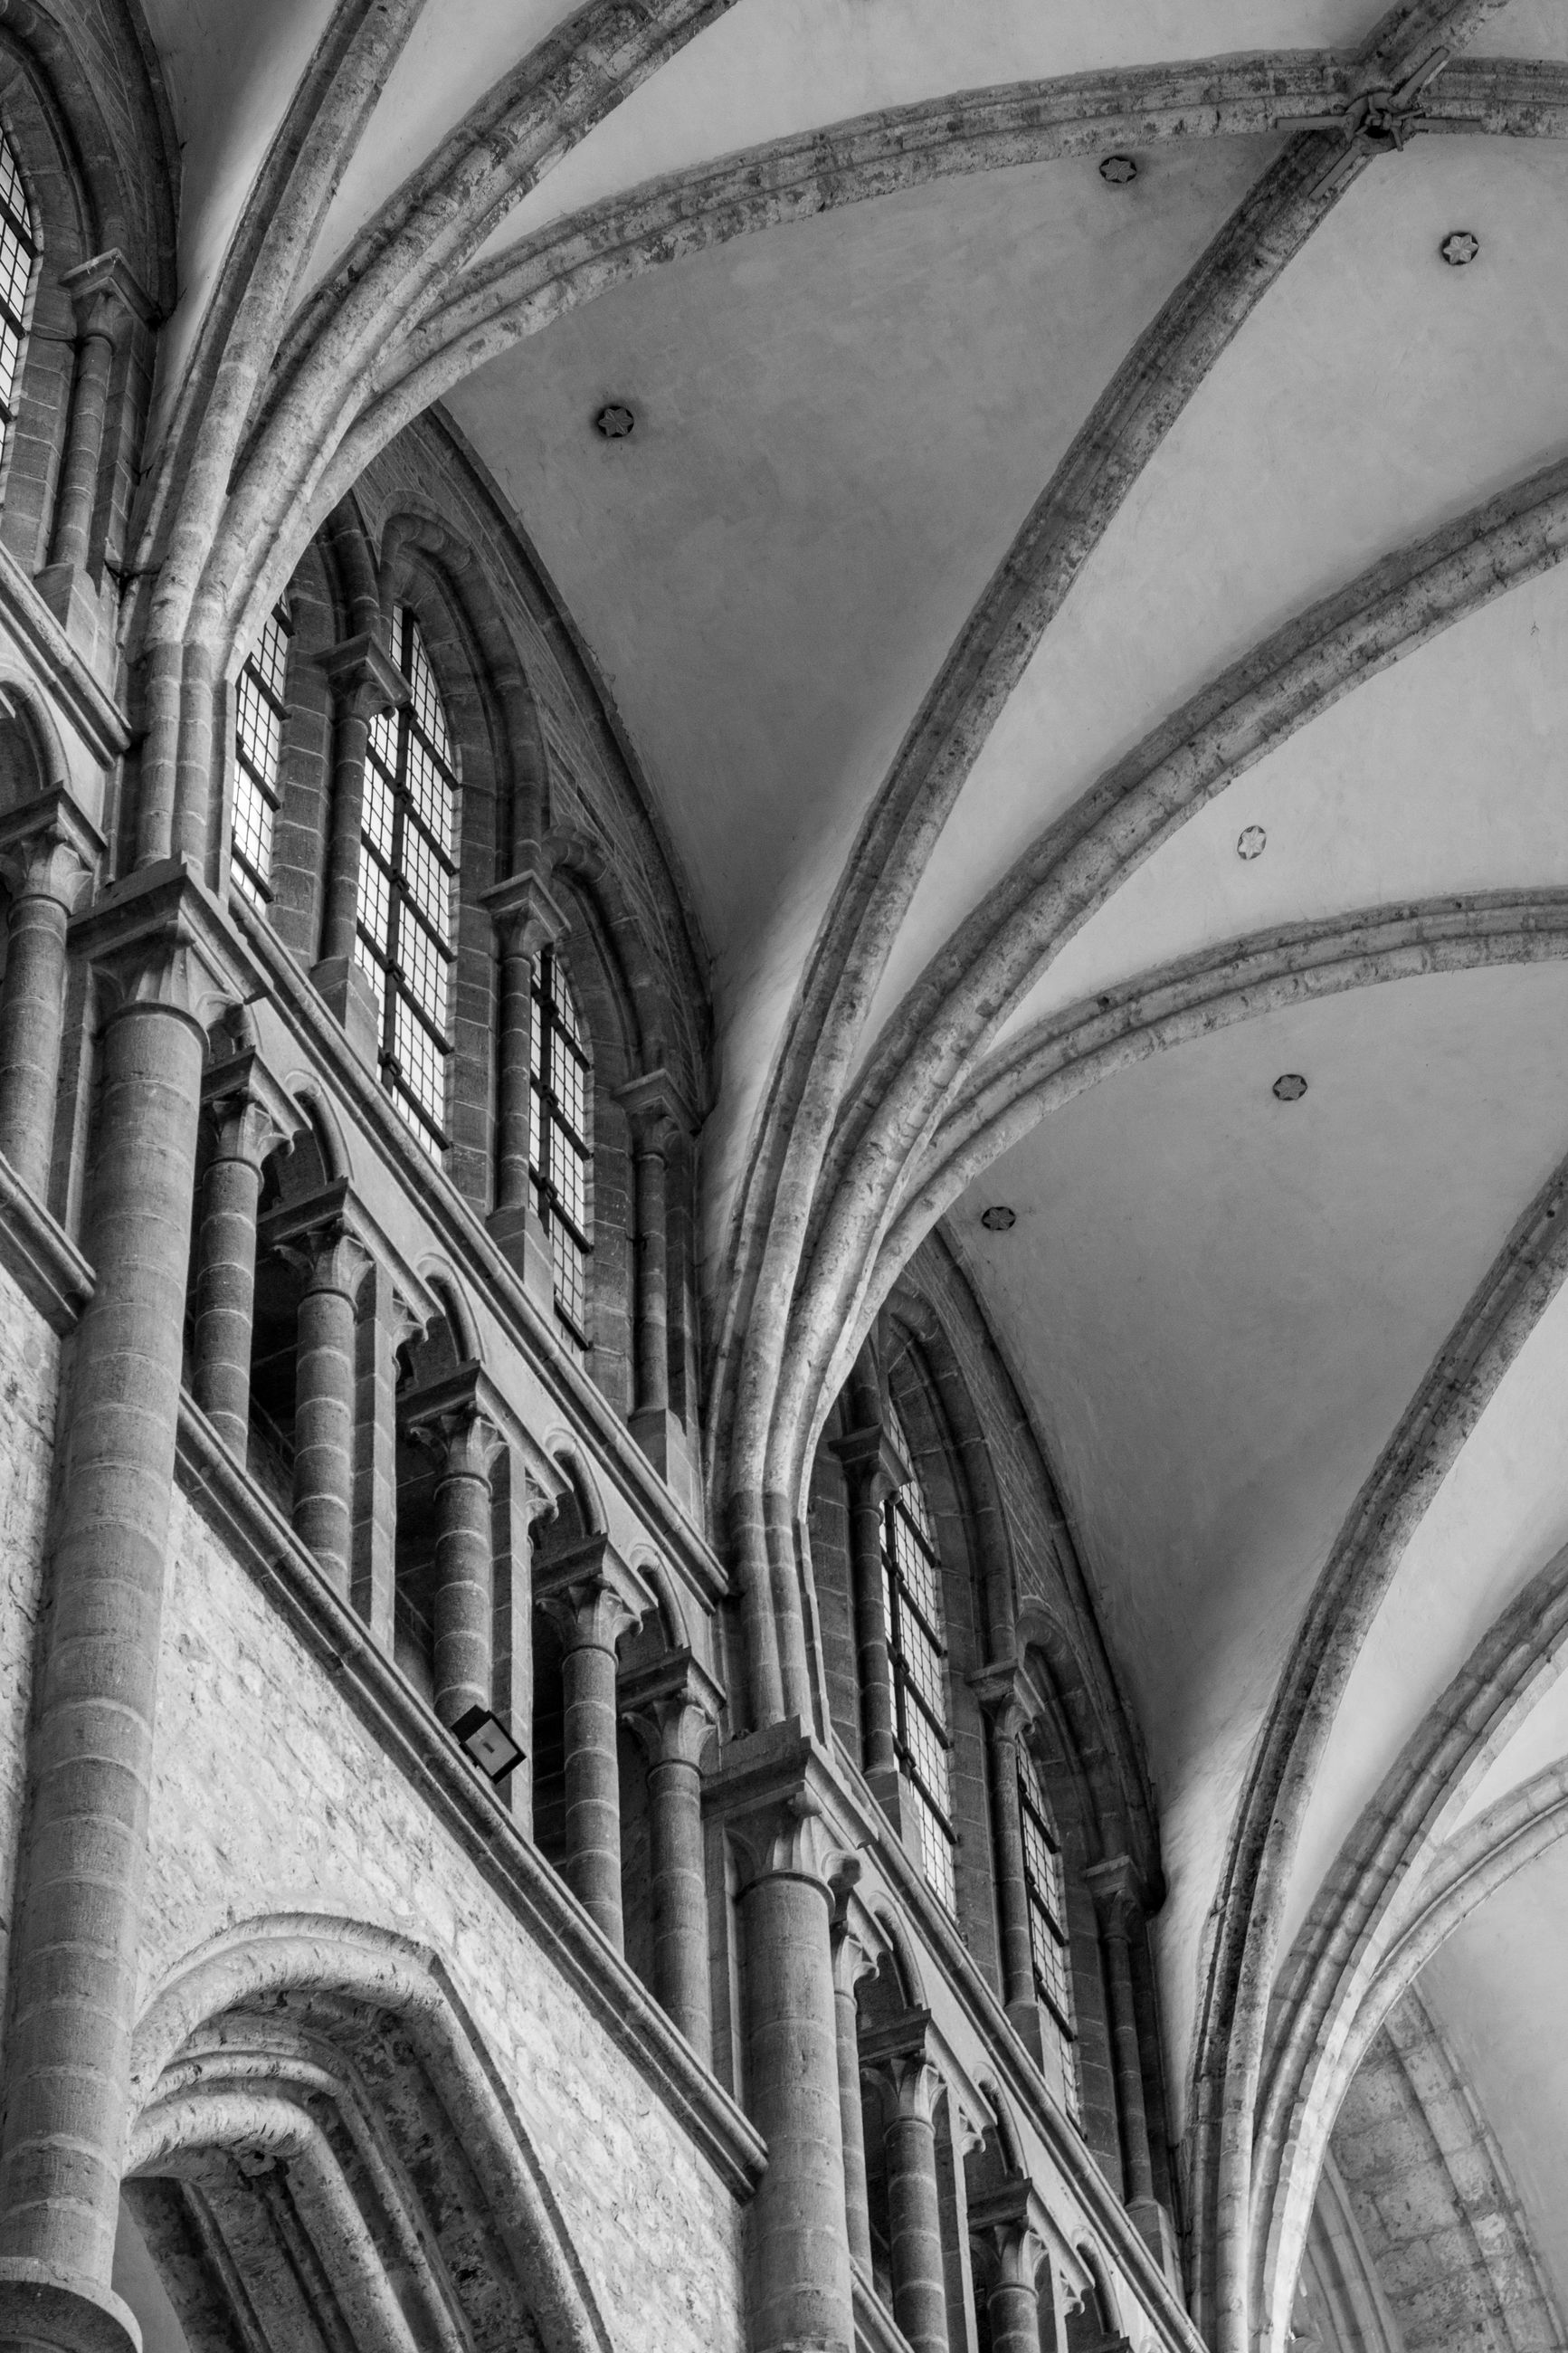 LOW ANGLE VIEW OF CEILING OF HISTORIC CHURCH